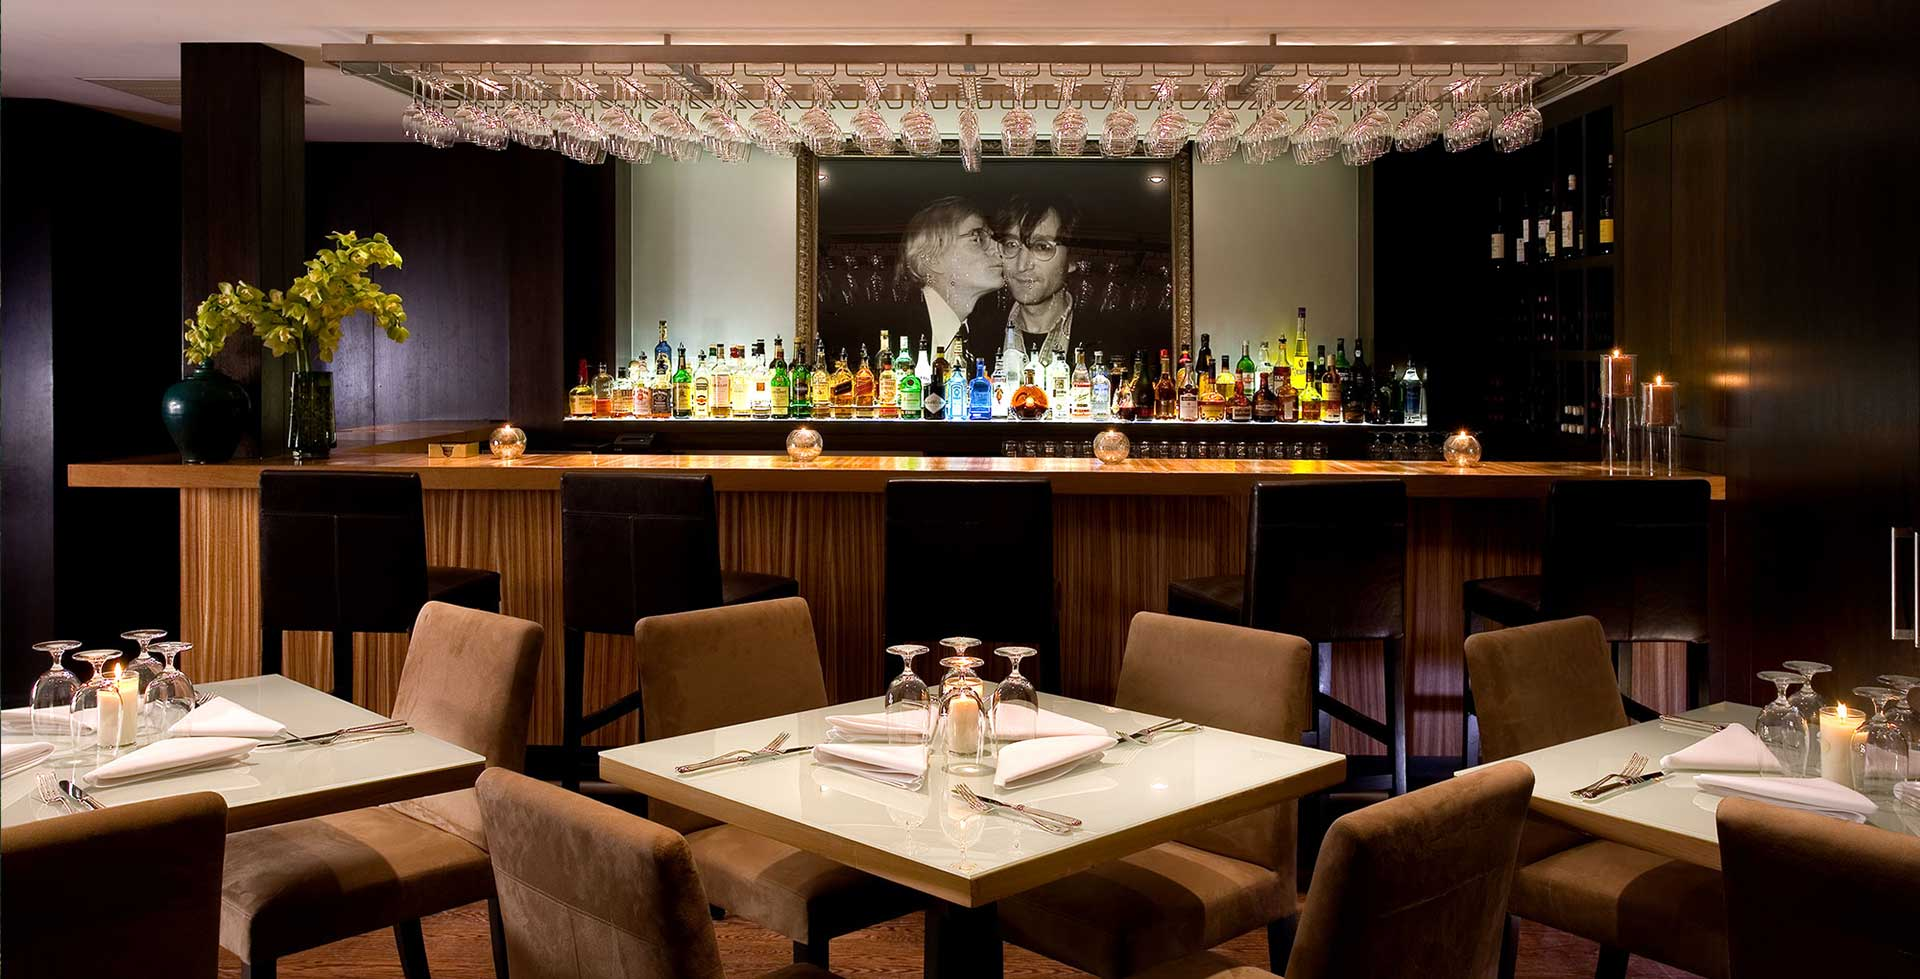 bar louis' bar and liquor selection with seated tables in front